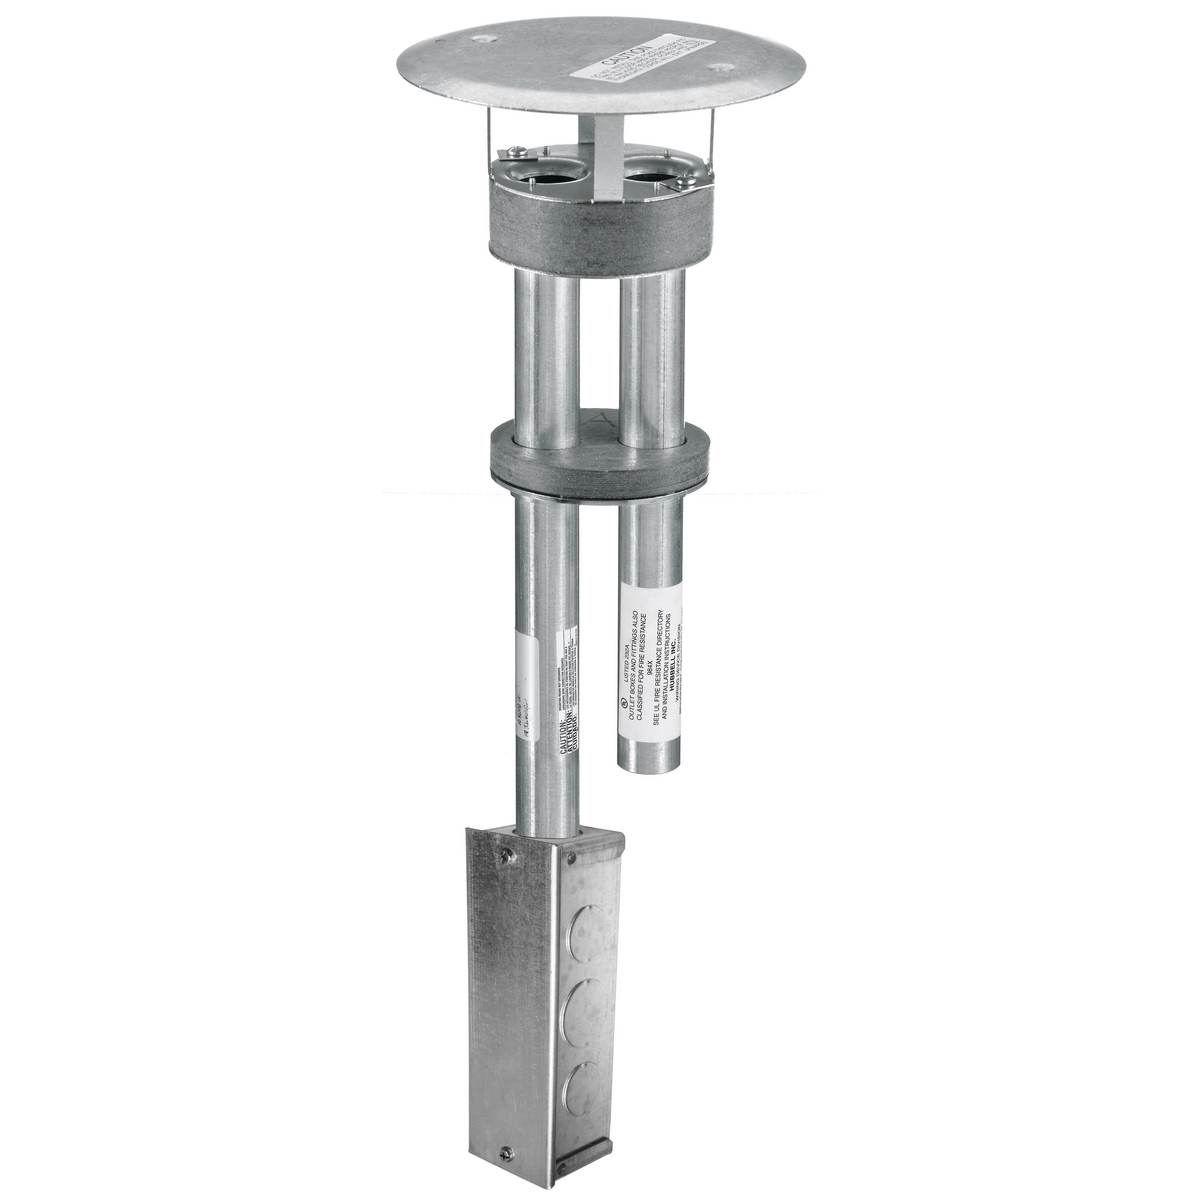 Hubbell S1PTFITJ Through Floor Fitting Fire-Rated Poke-Through with Junction Box